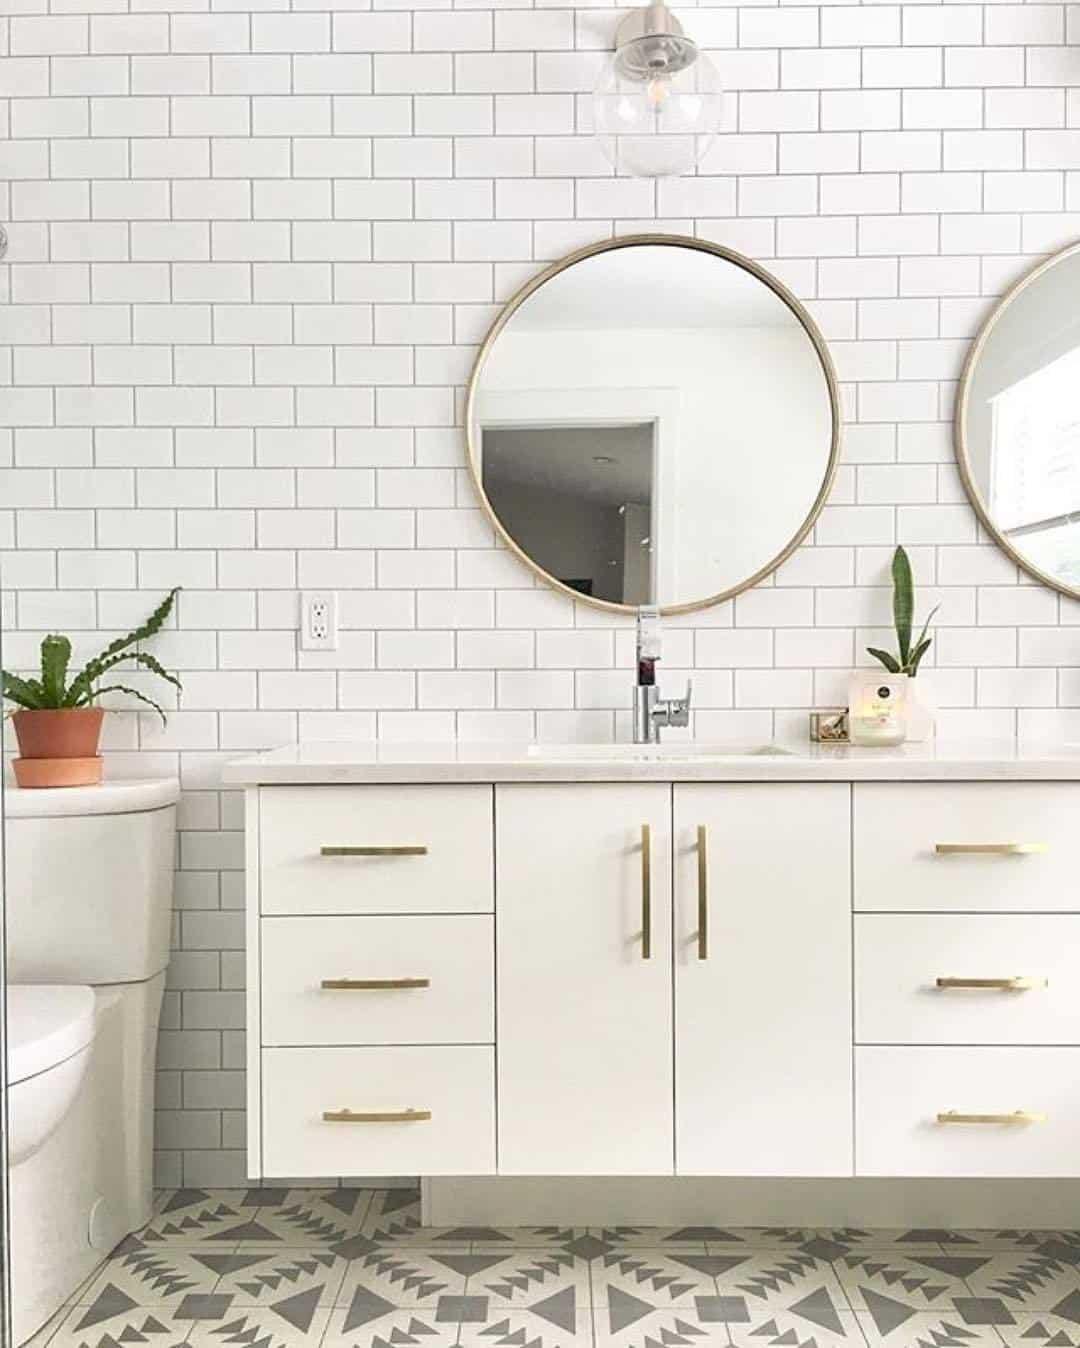 Perky Sale Mid Century Bathroom Tile Read More To Experience My Mid ...